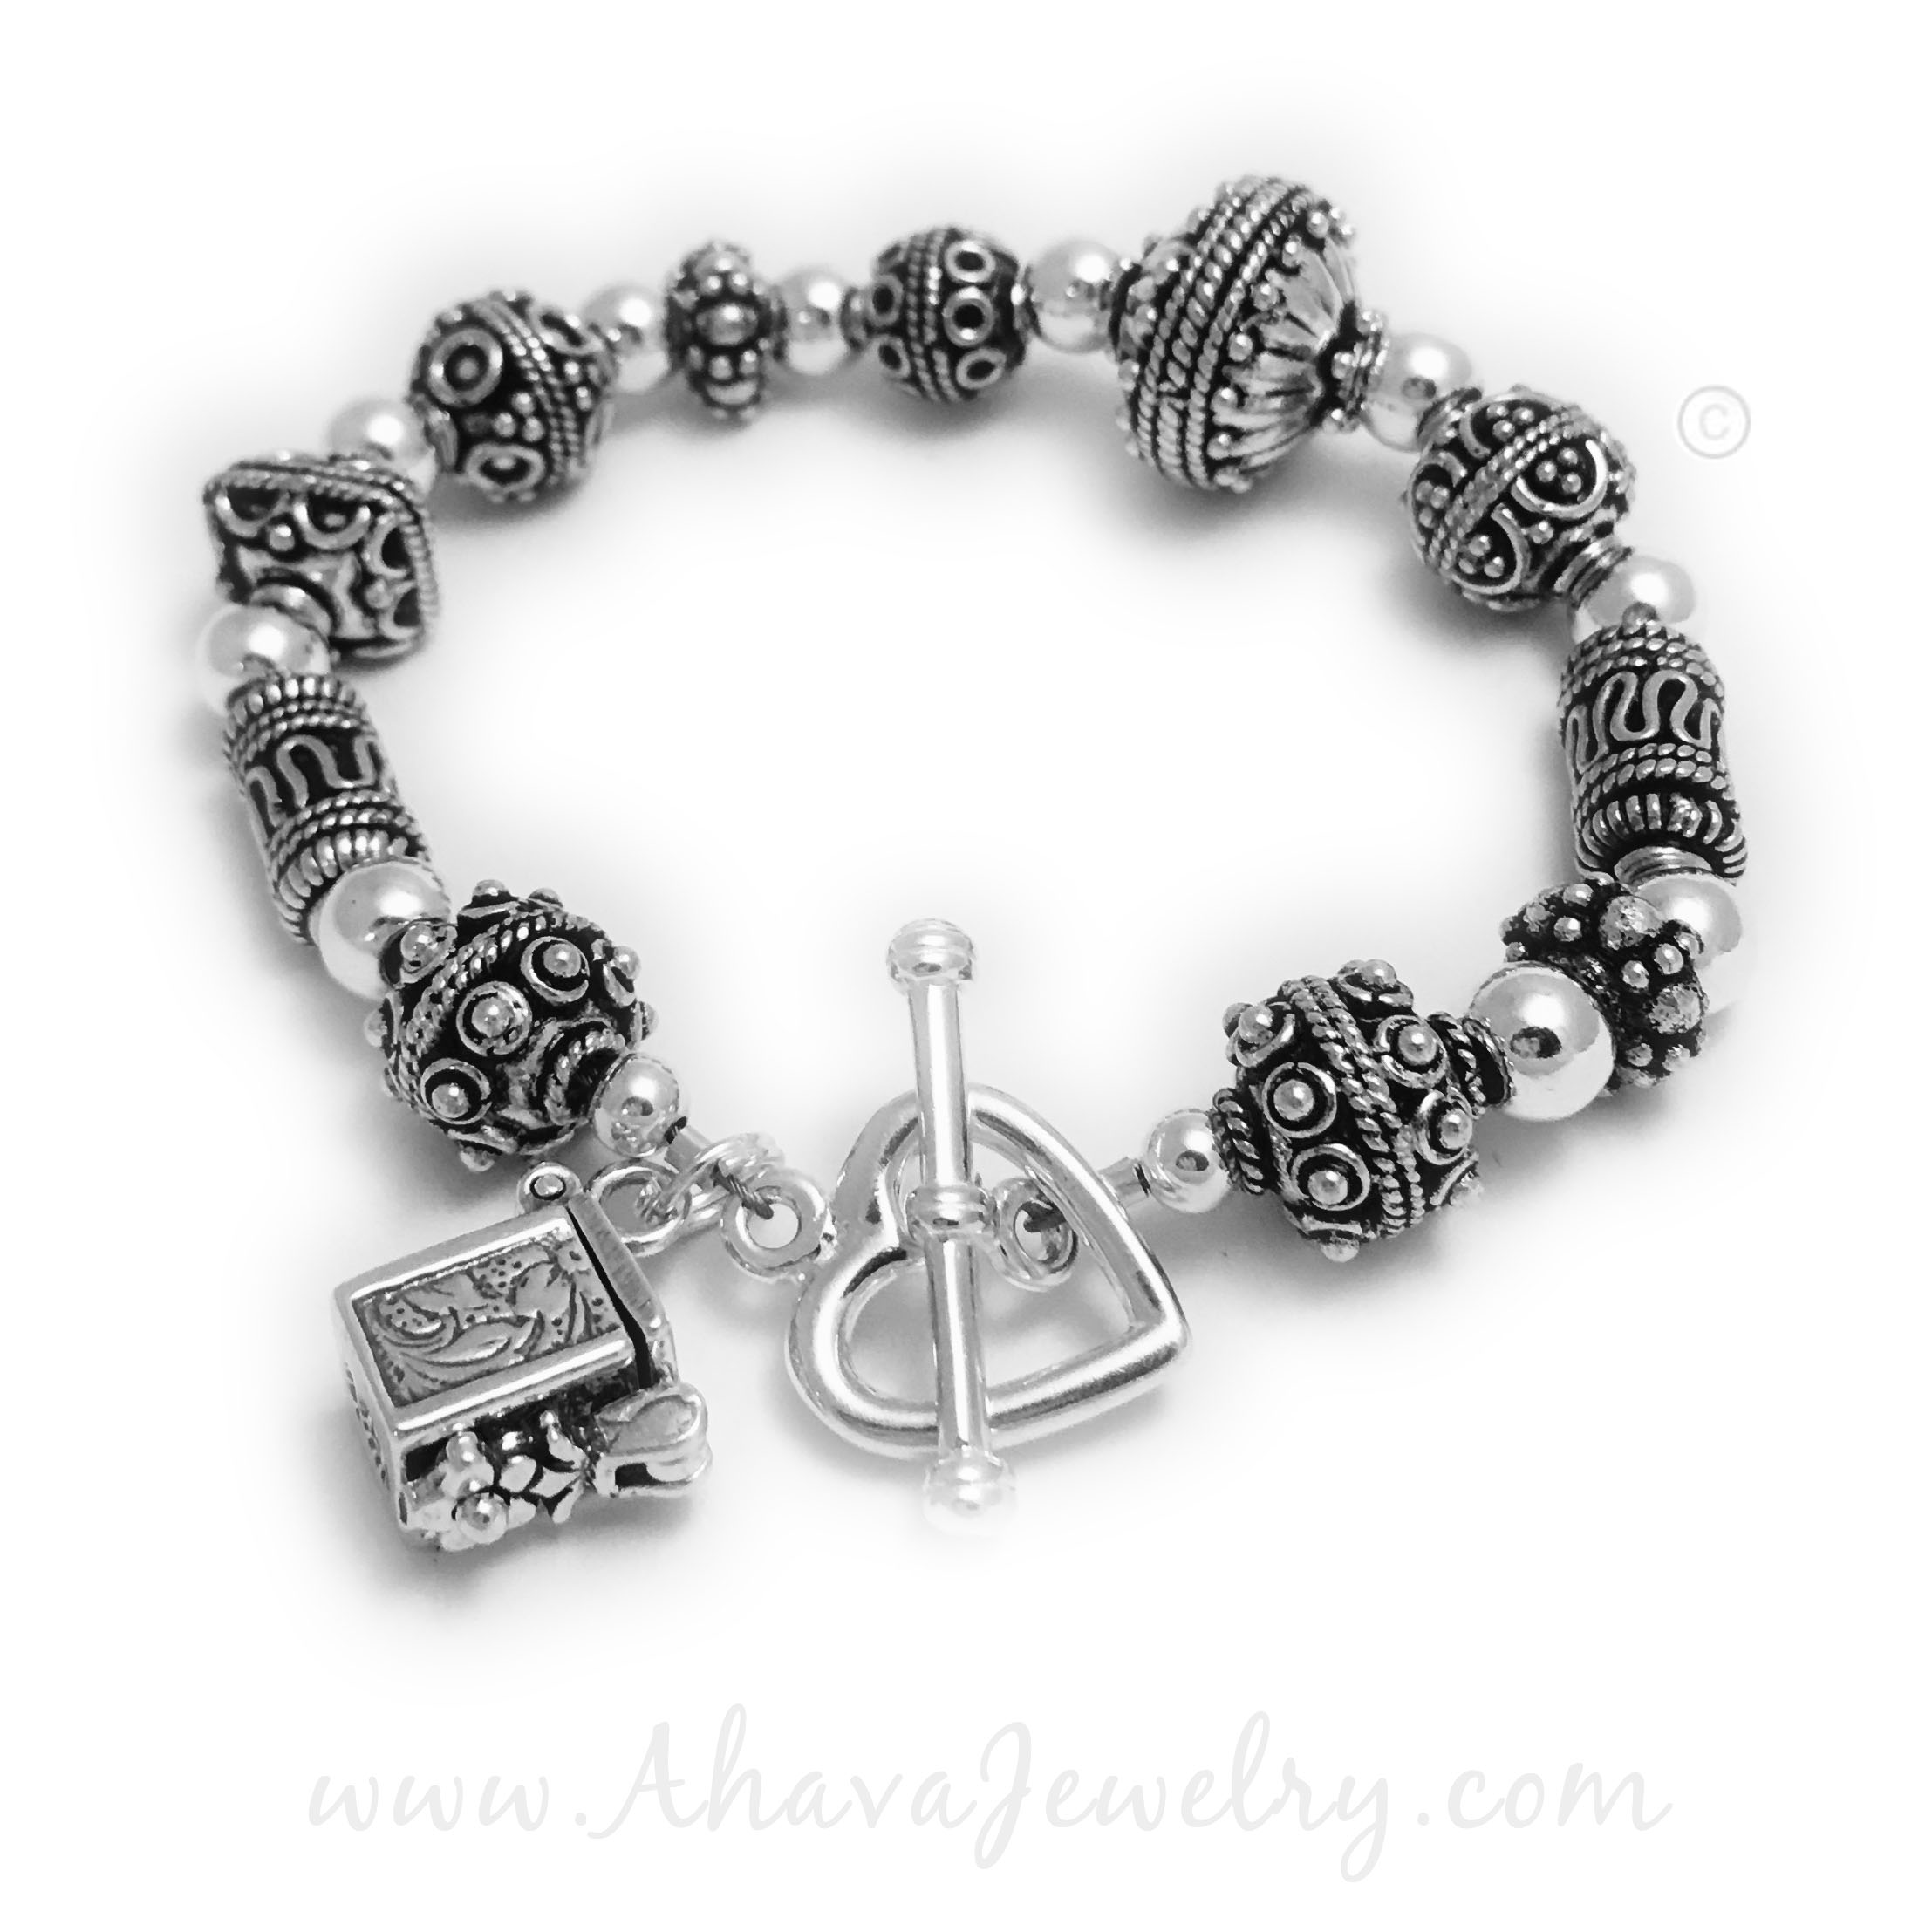 This Judaic Prayer Box Bracelet is shown with a upgraded Heart Toggle Clasp.